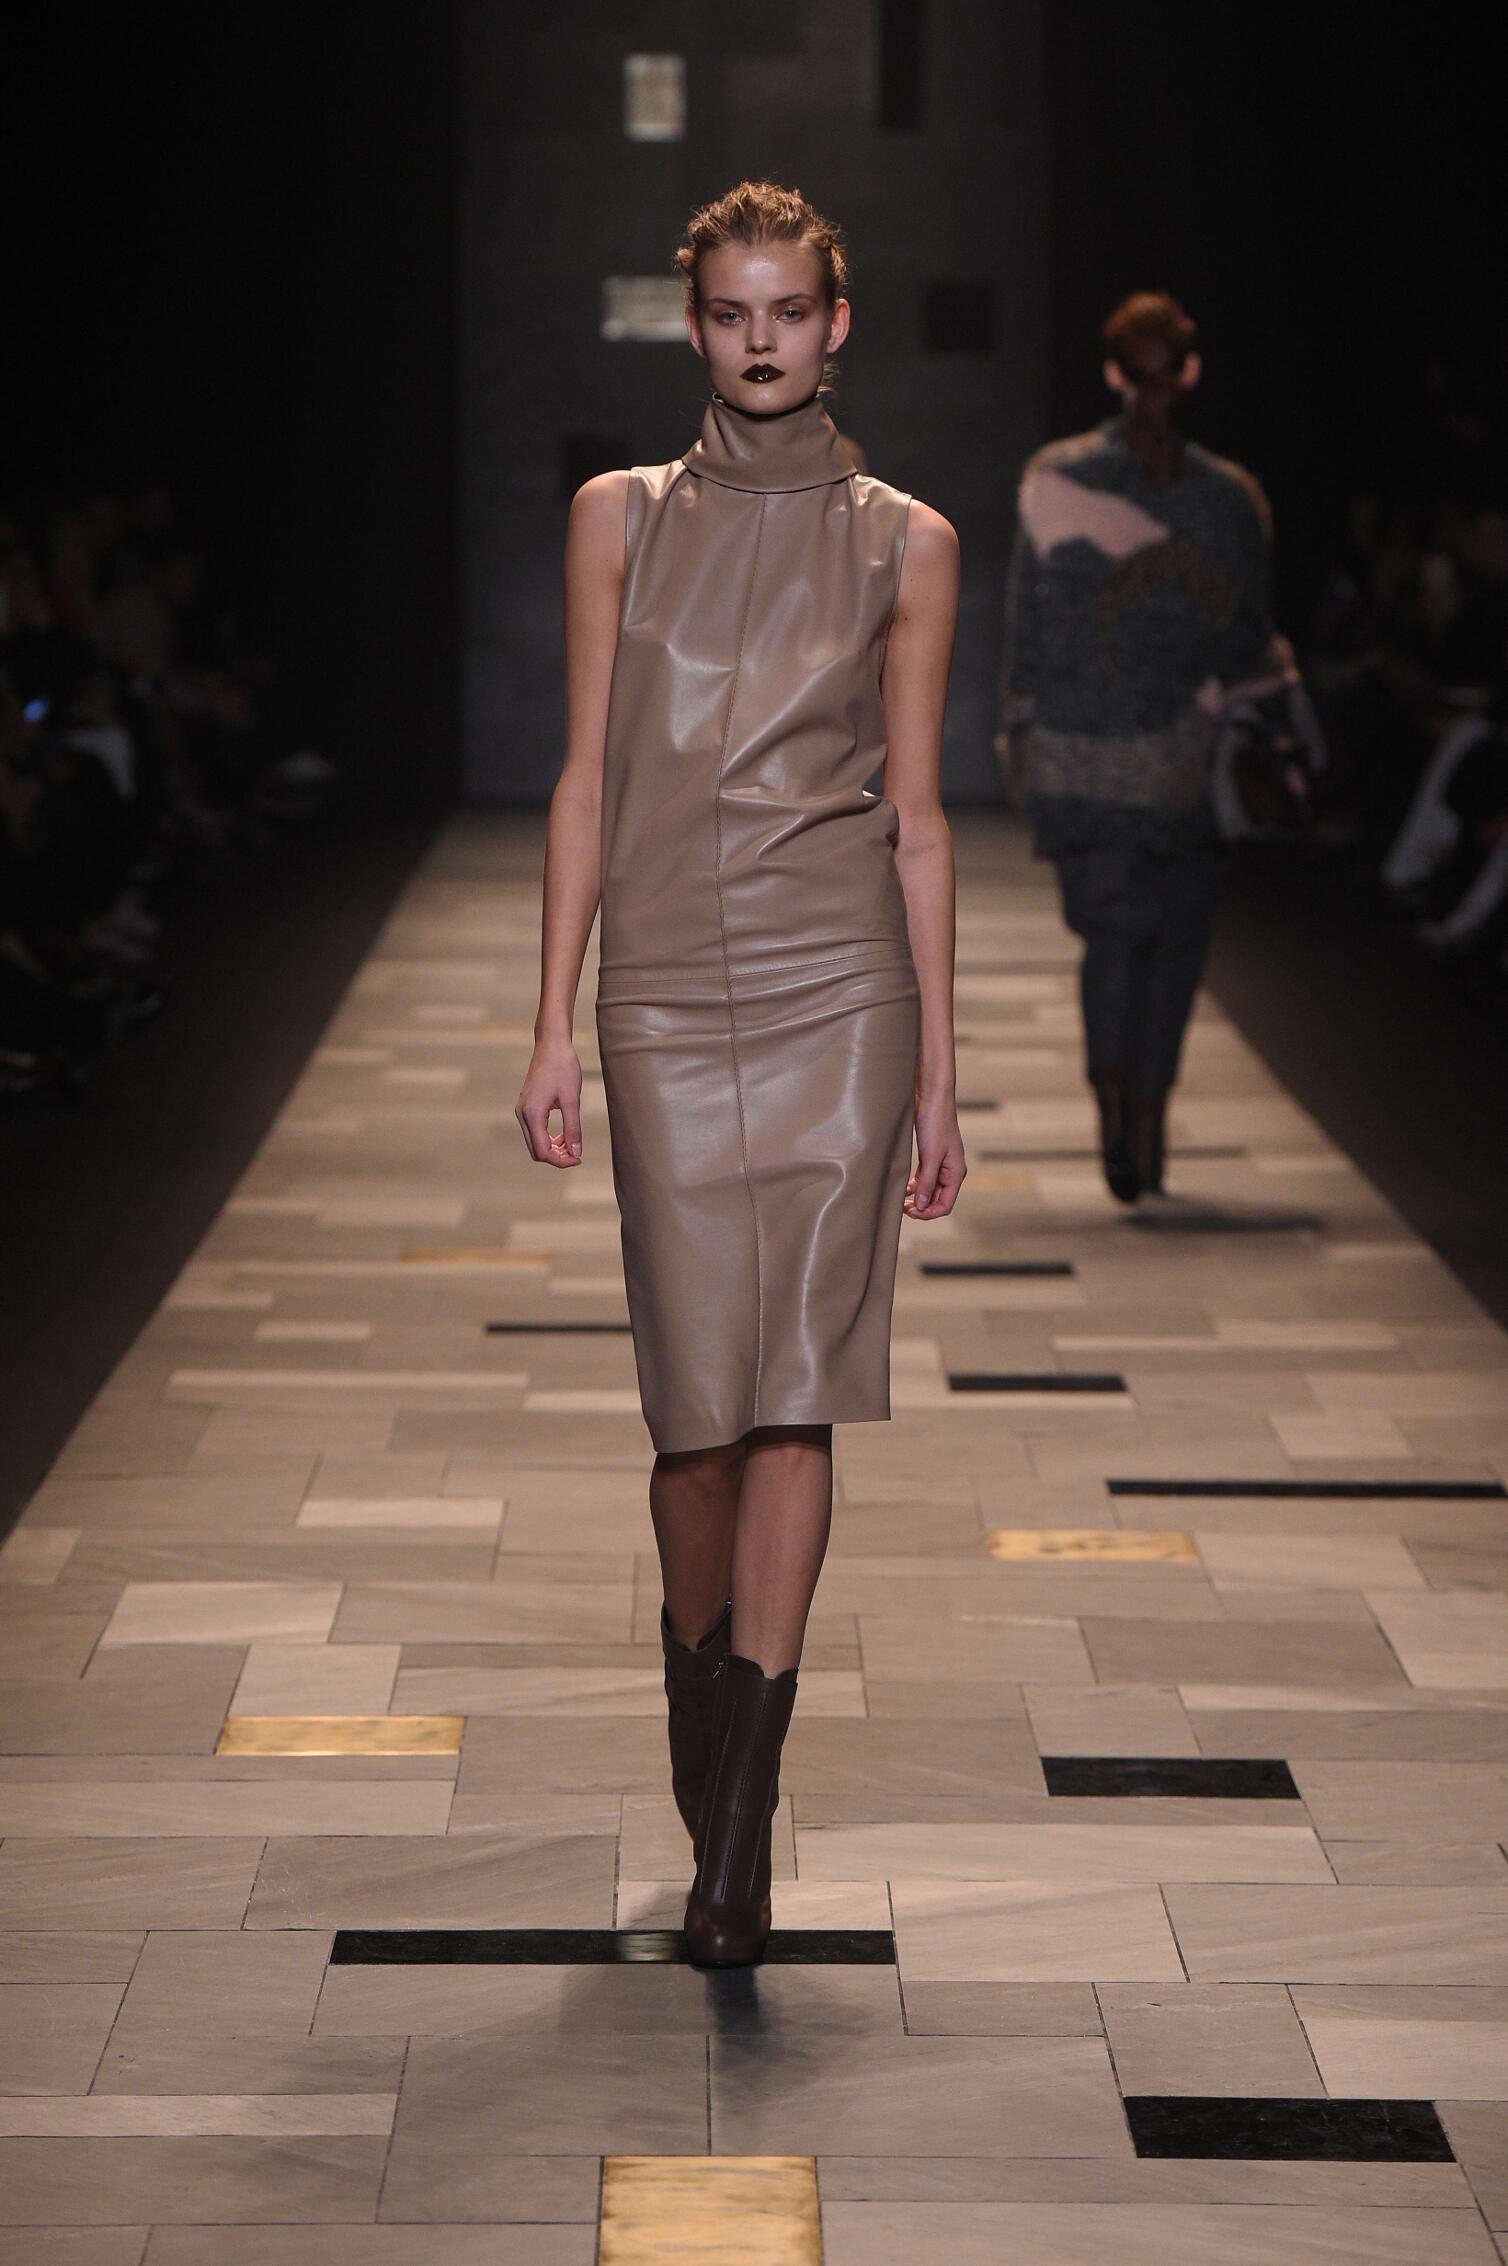 2015 Fashion Woman Model Trussardi Collection Catwalk